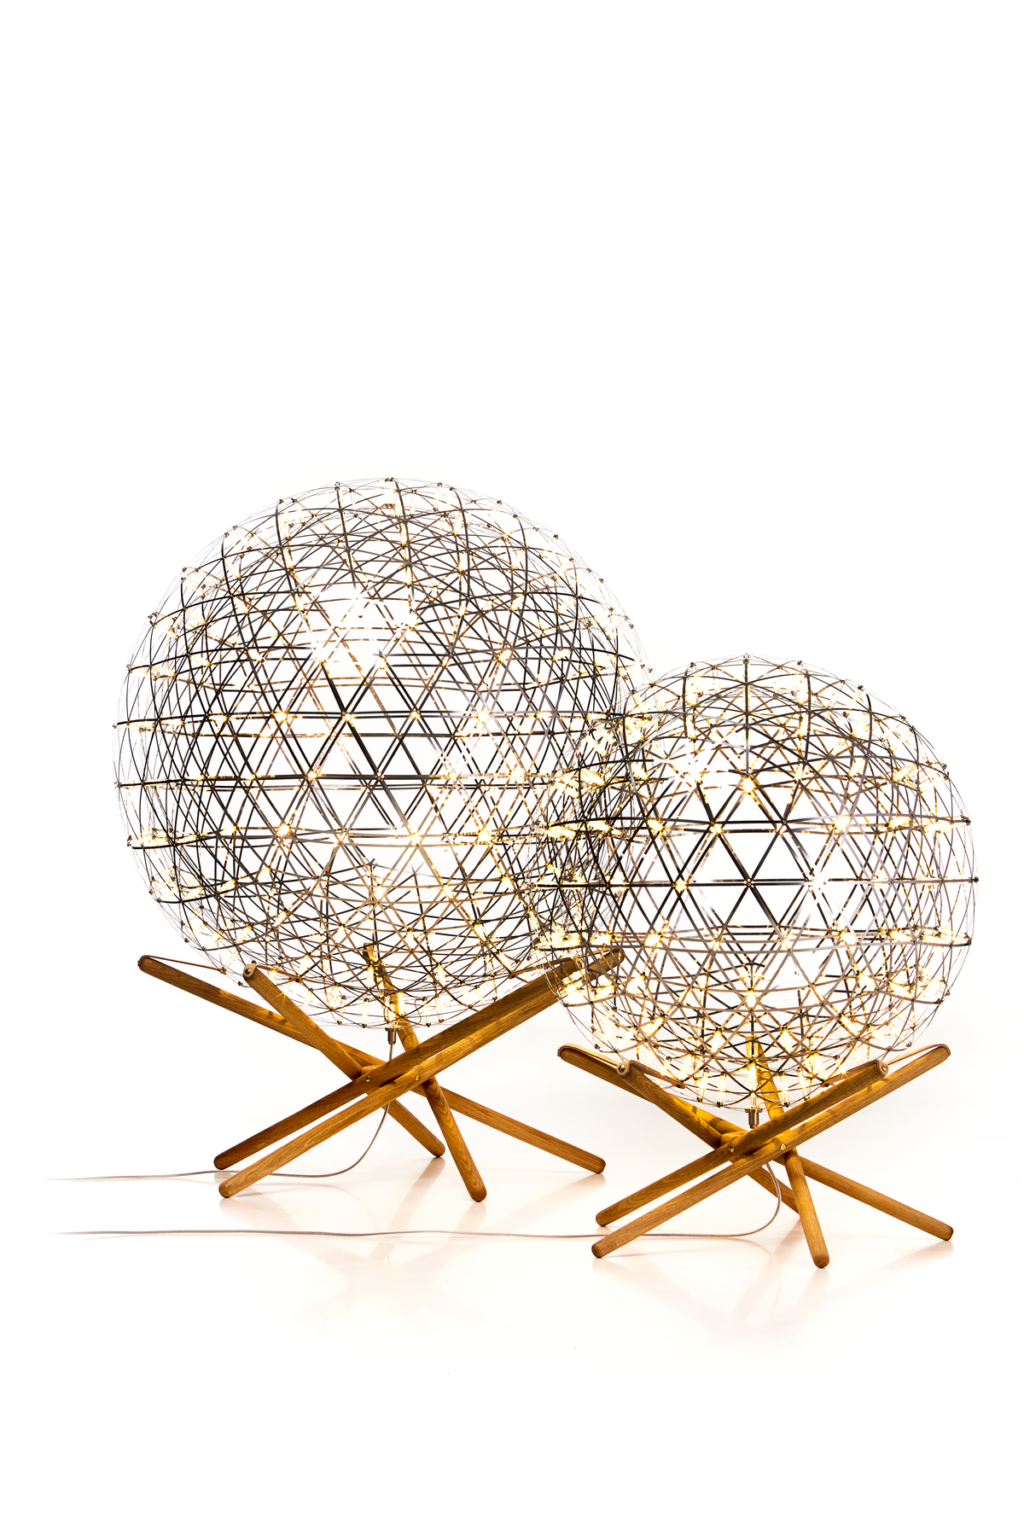 https://desidea.hu/wp-content/uploads/fly-images/160212/moooi-raimond-tensegrity-allolampa5-1024x0.png